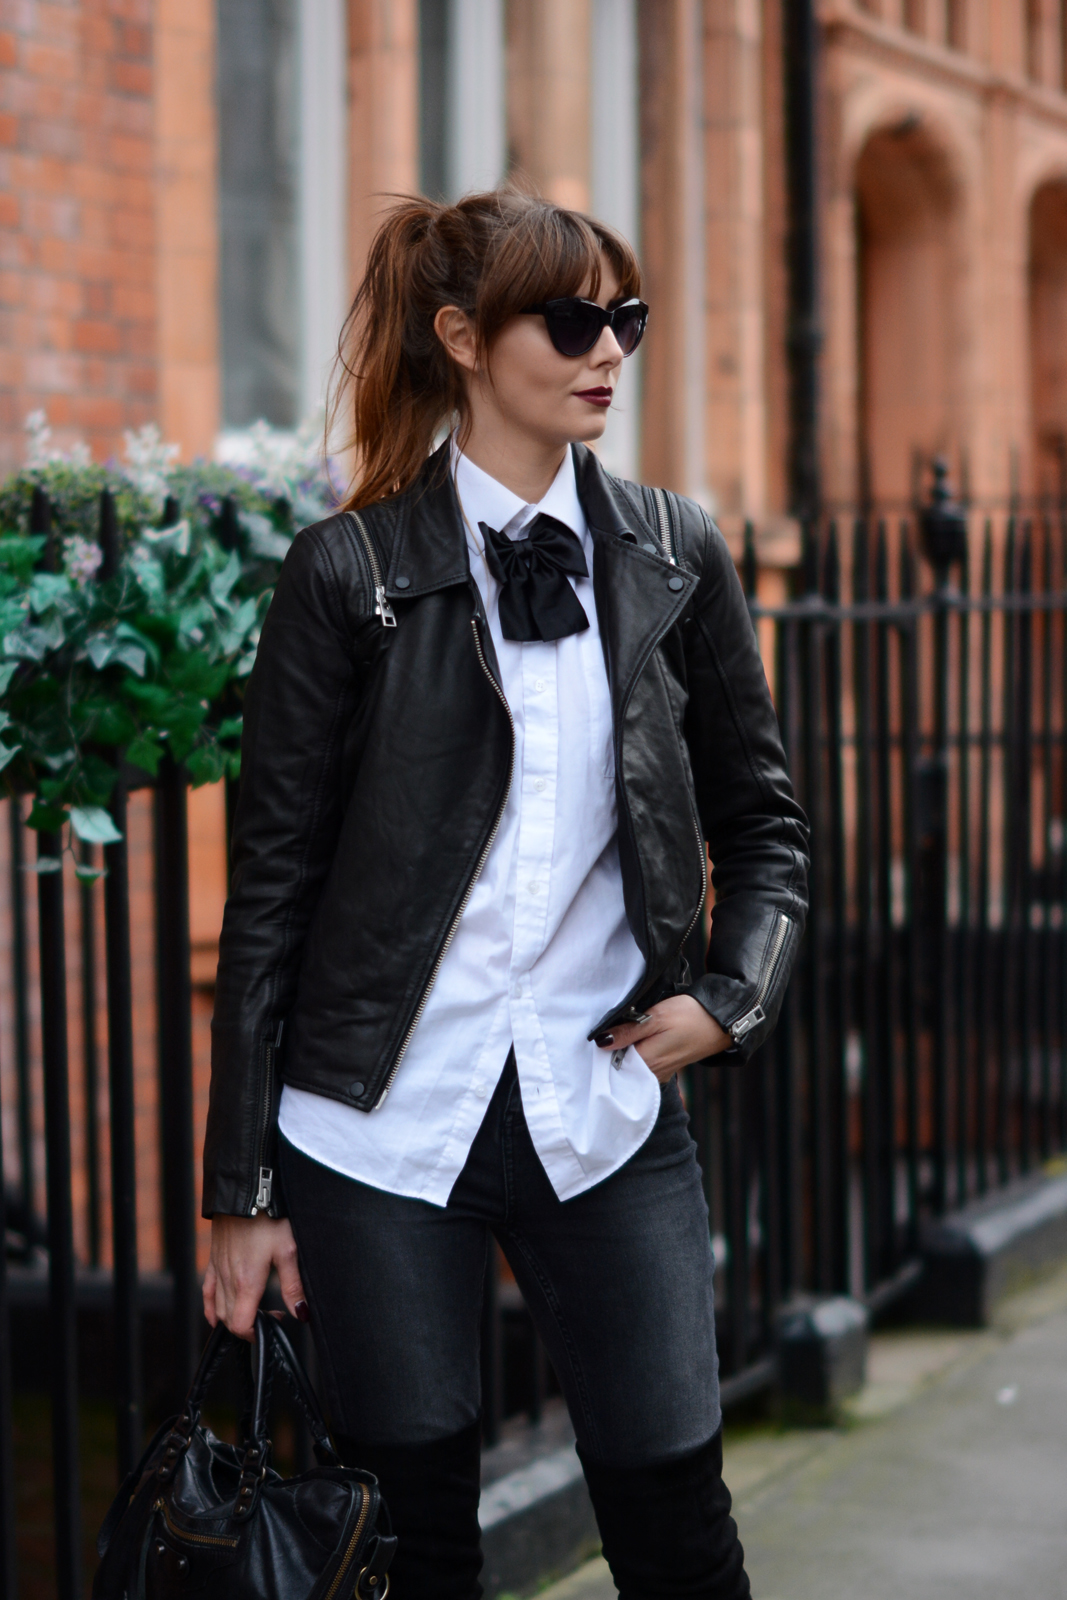 EJSTYLE - Black bowtie, all saints leather biker jacket, white shirt, street style London, Dark red vamp lips, ombre hair, fashion blogger